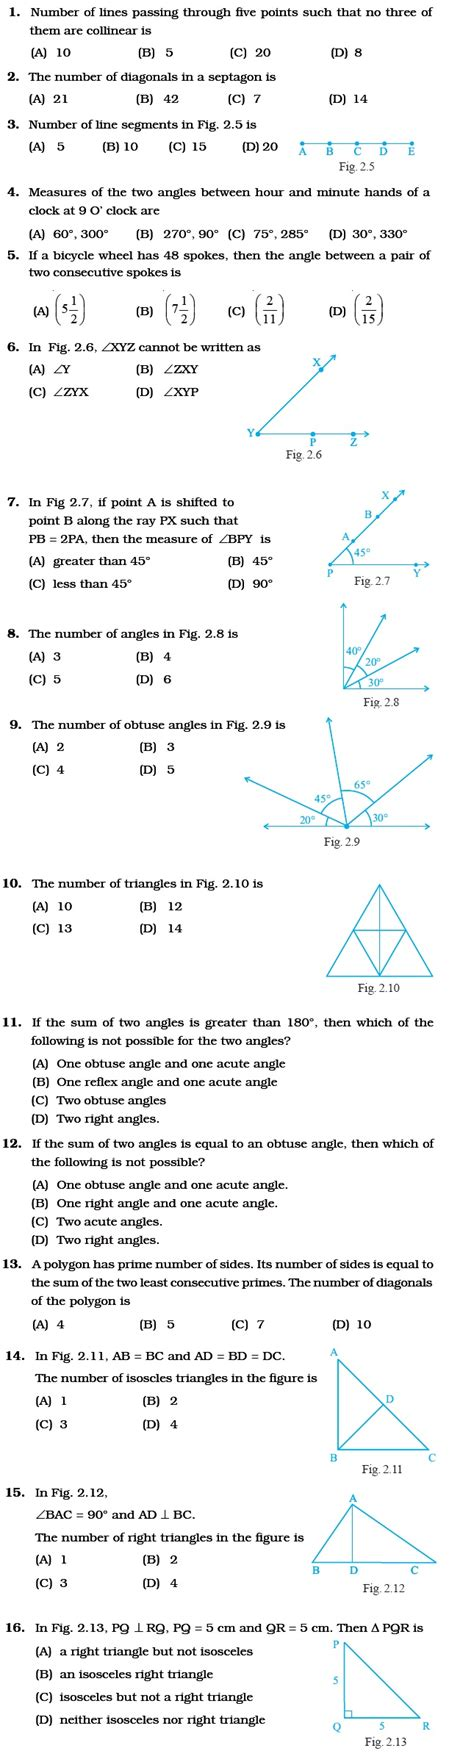 questions quiz pdf geometry multiple choice questions with answers pdf